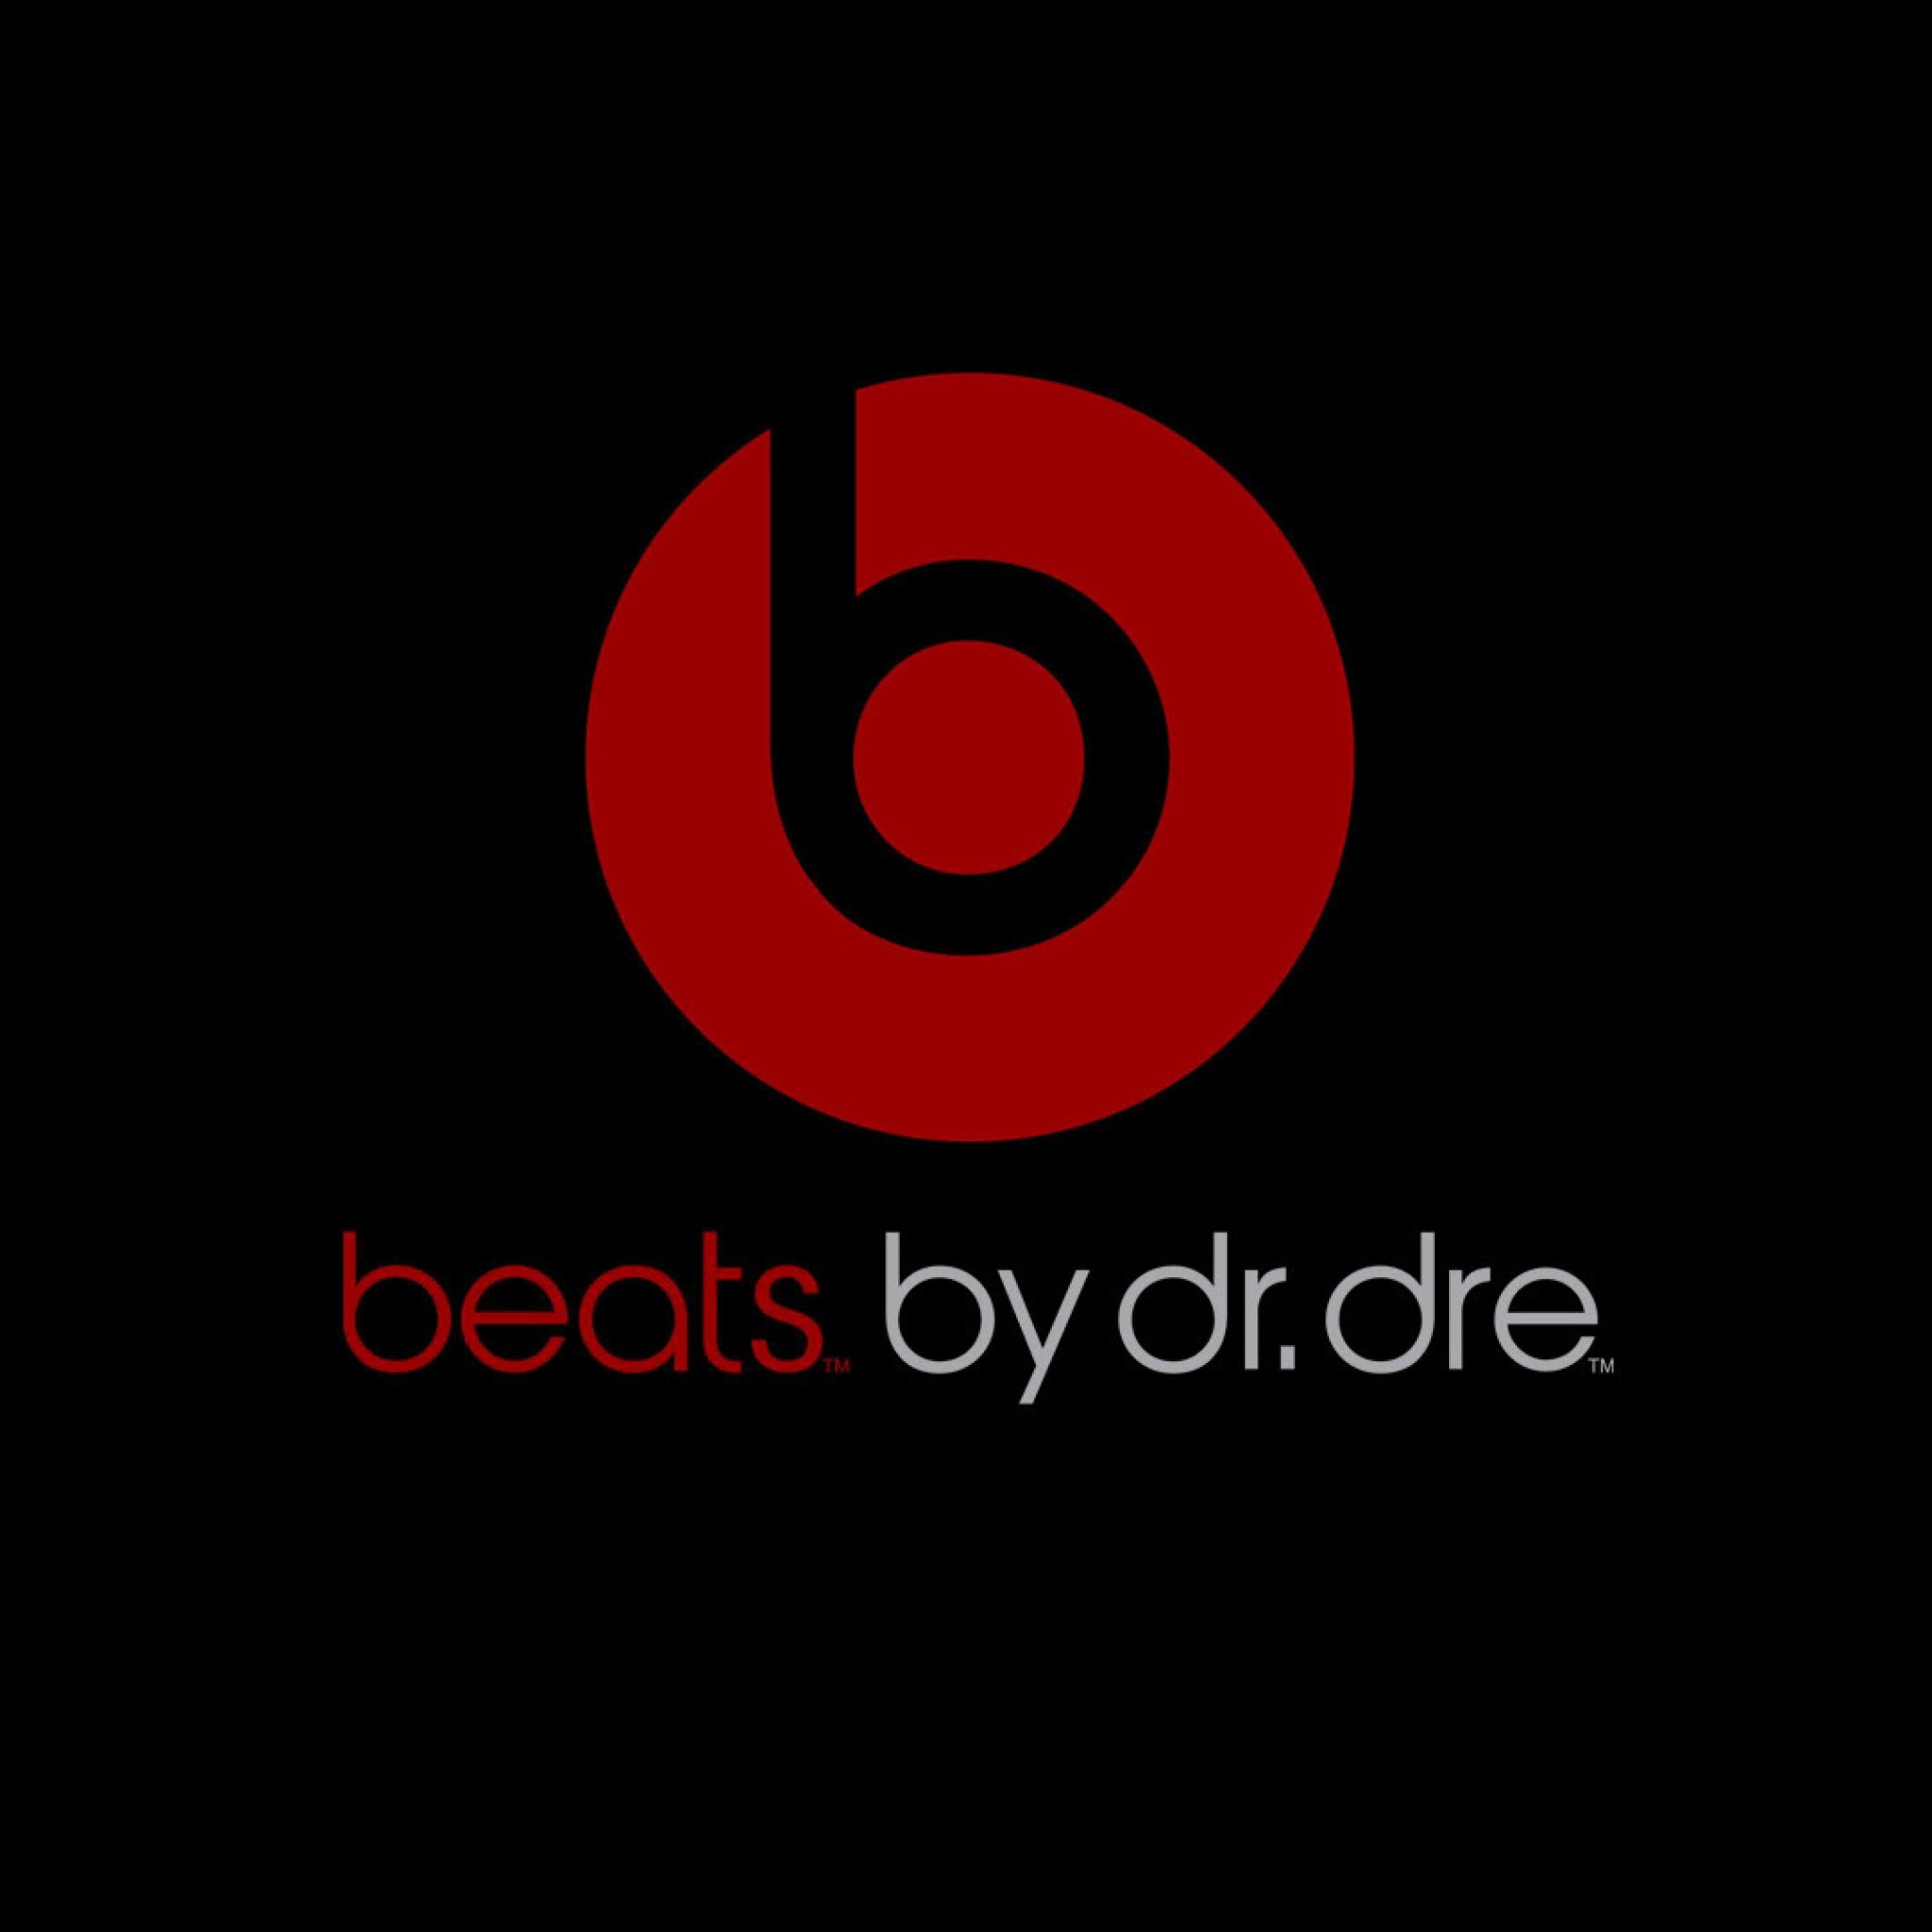 Wallpaper doctor, music, beats by dr dre